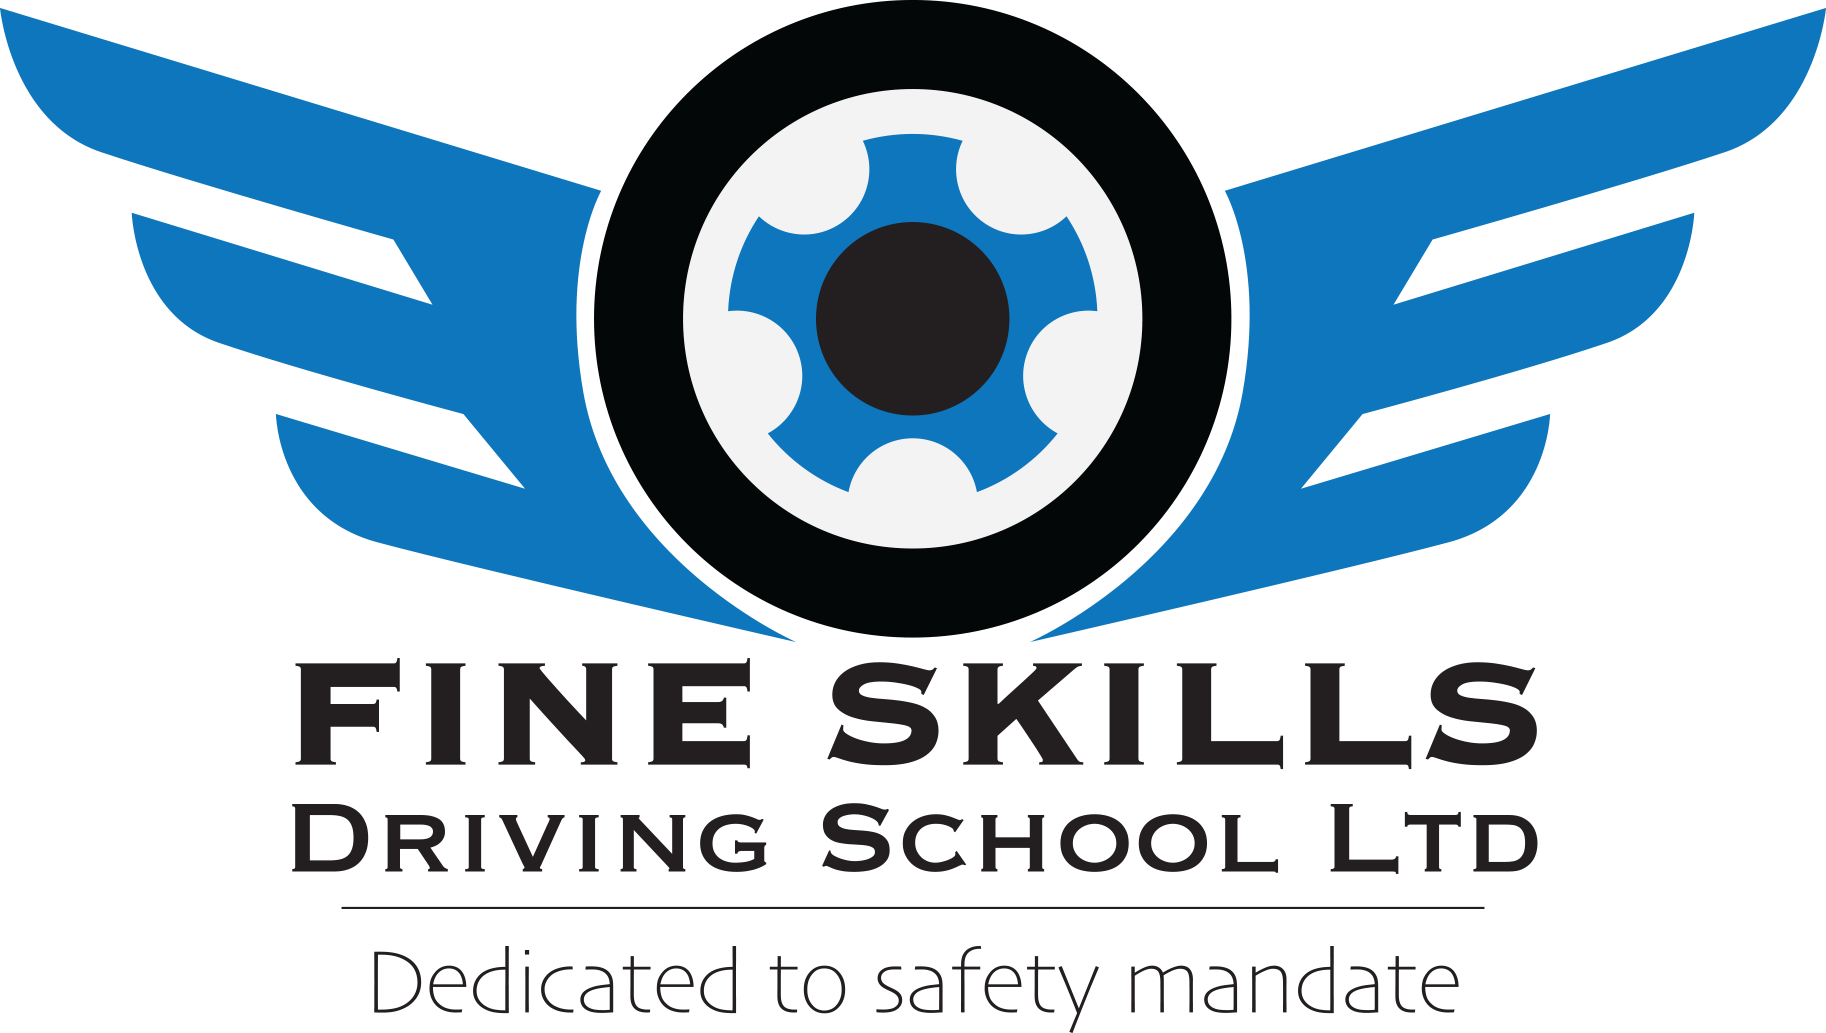 Fine Skills Driving School Ltd